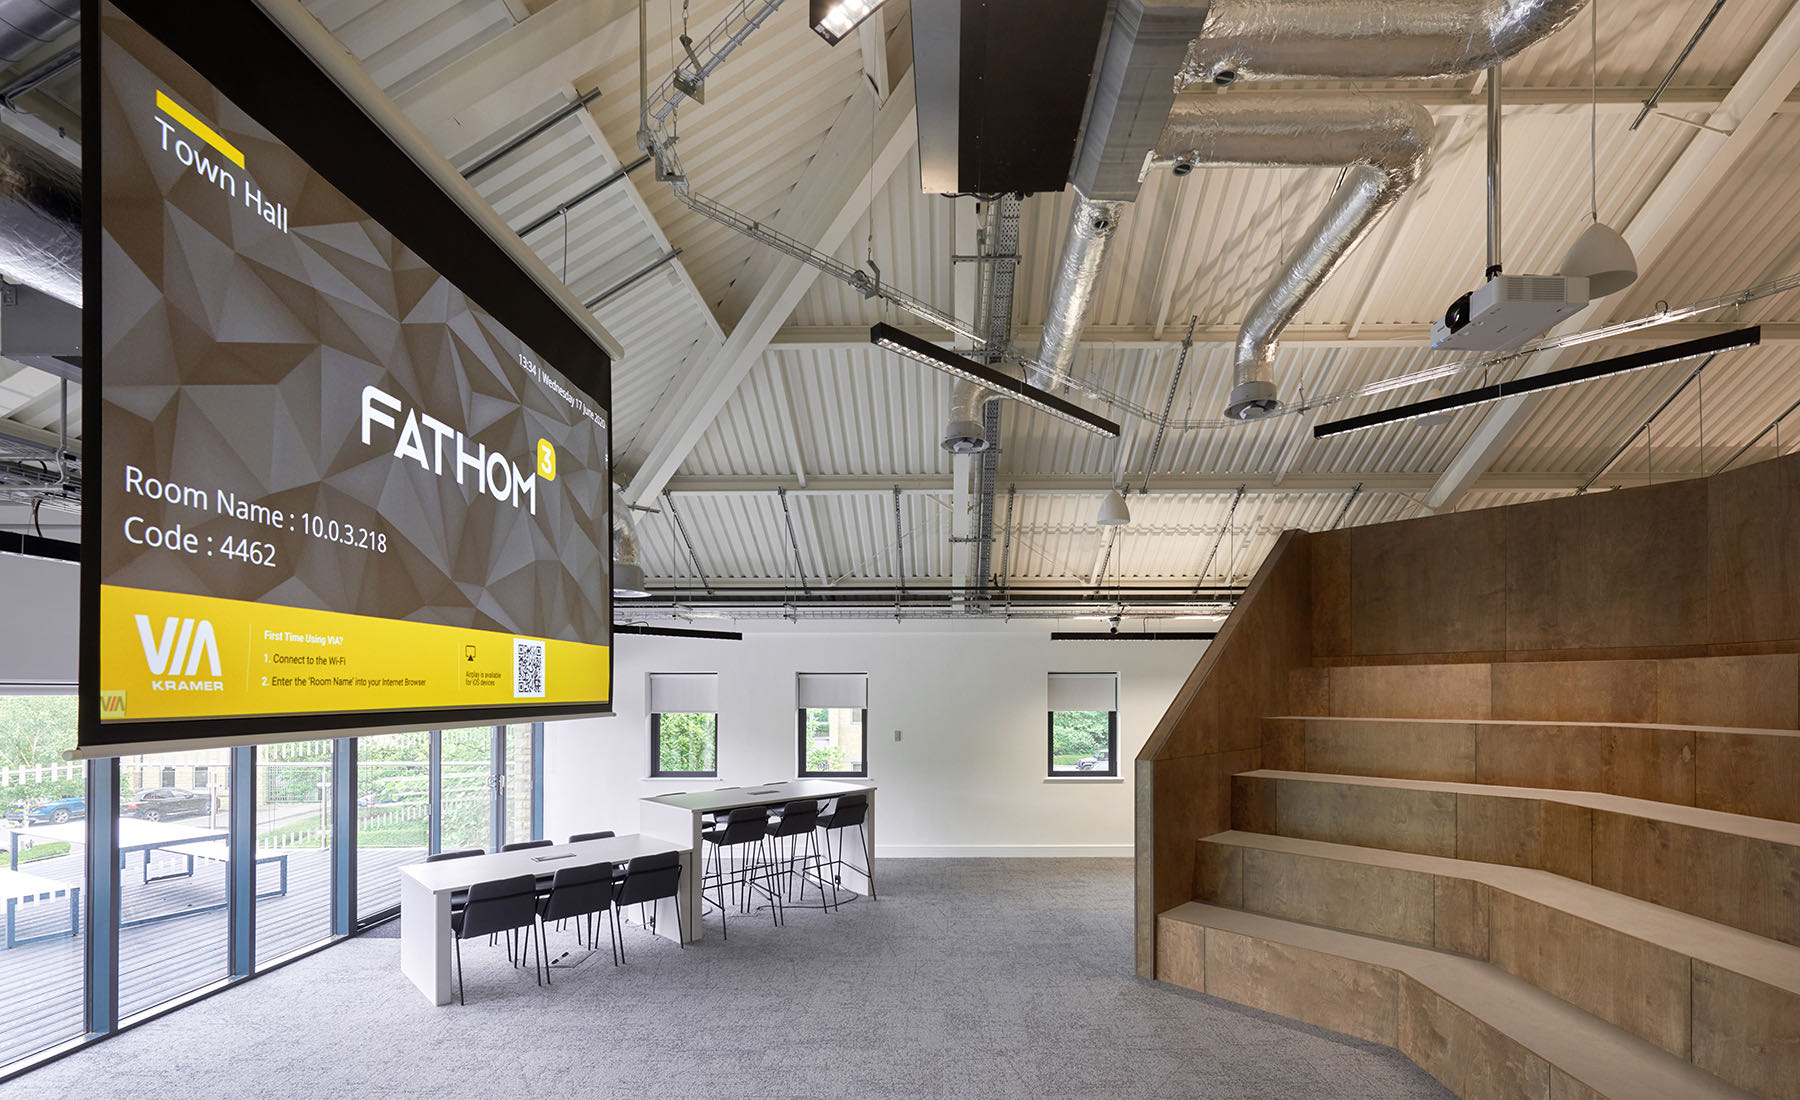 fathom3-west-yorkshire-office-10